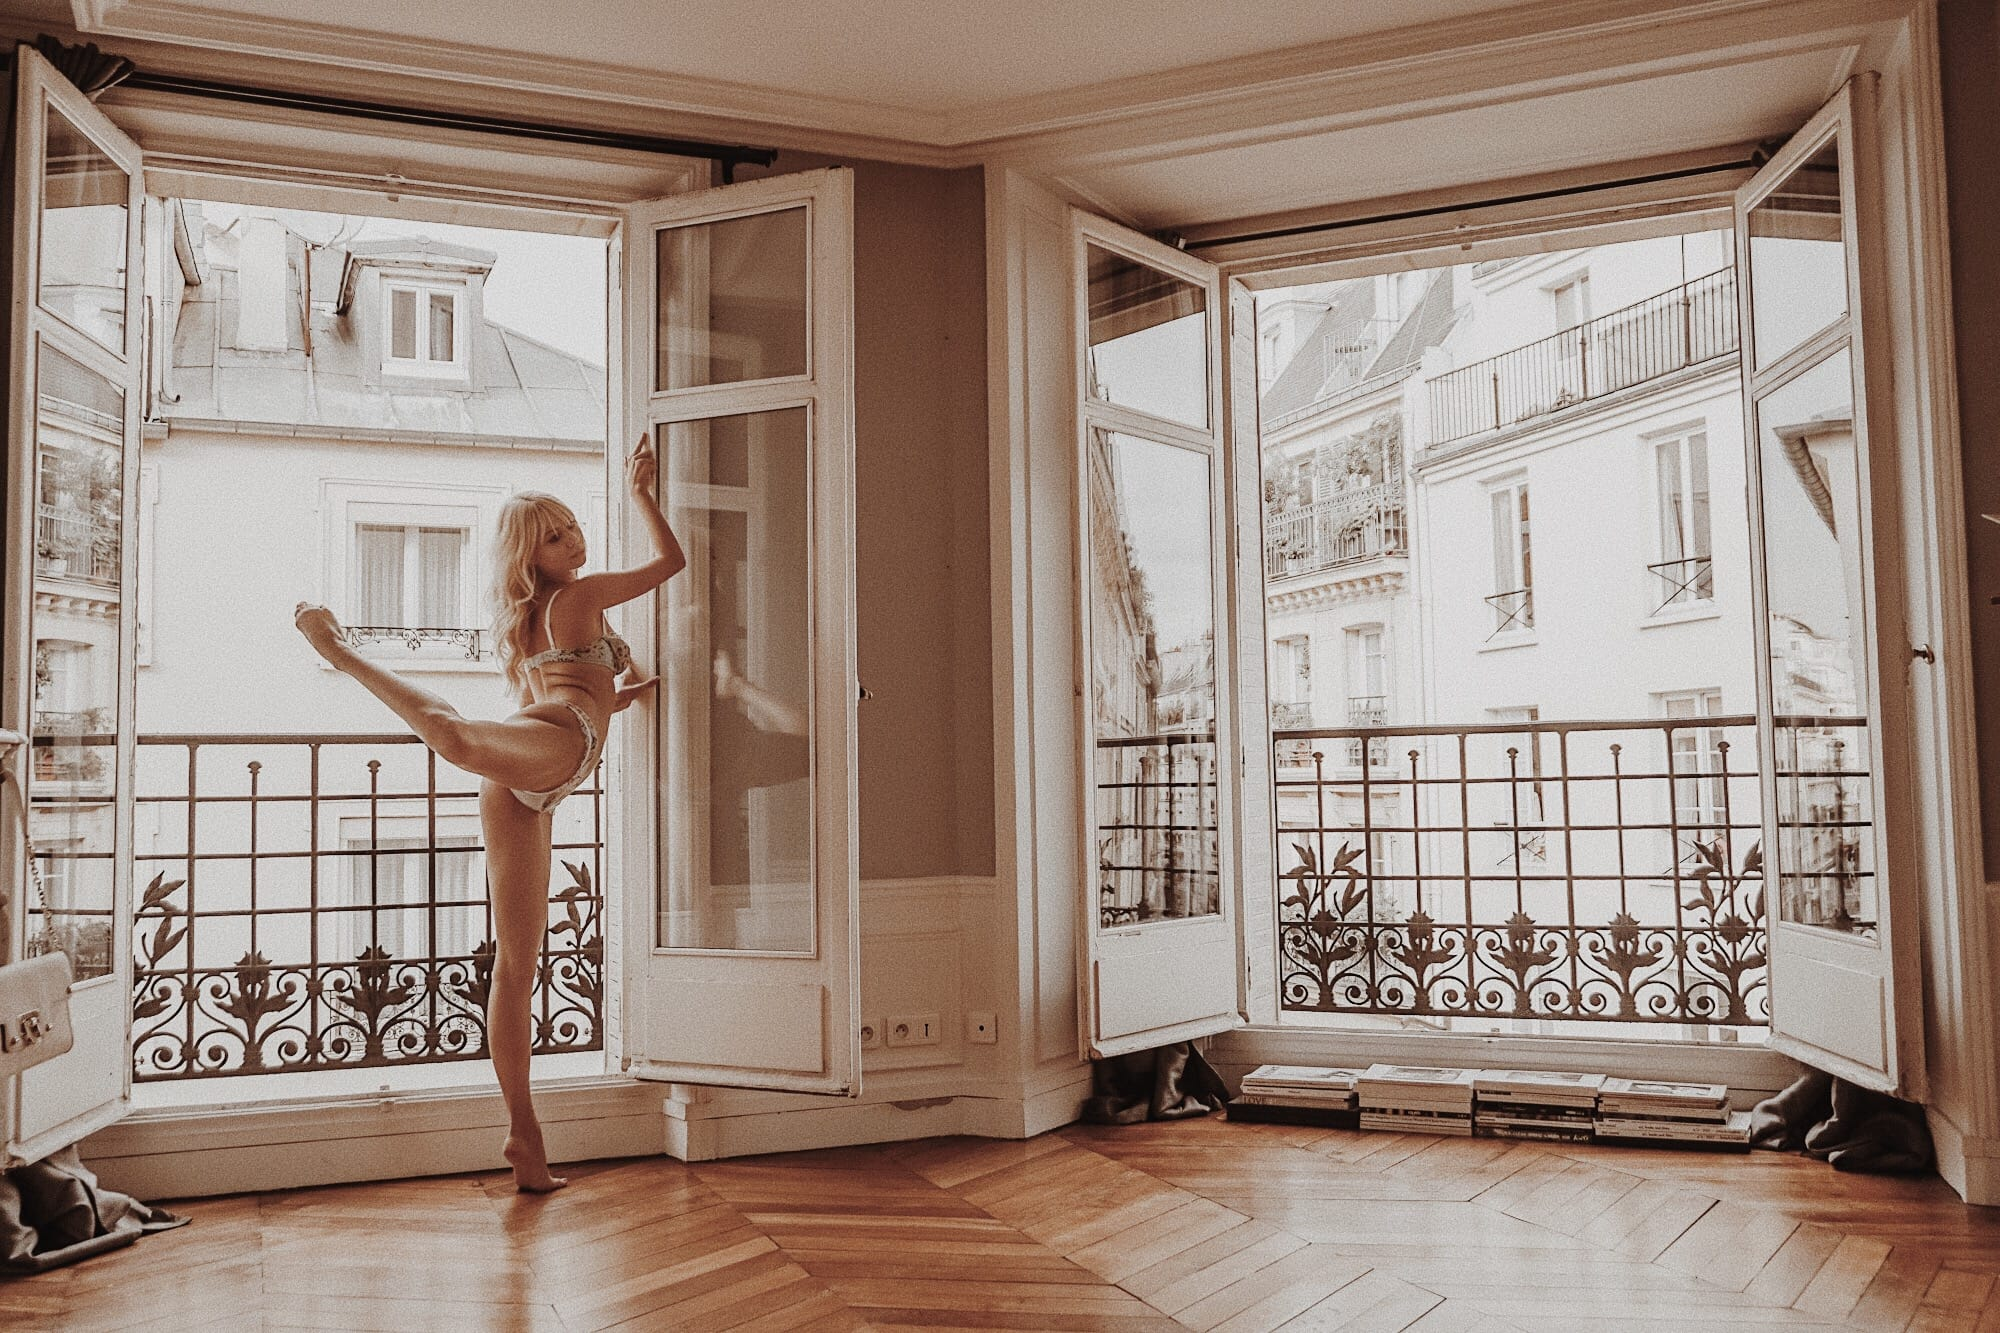 Sarah Loven dances ballet in Parisian flat